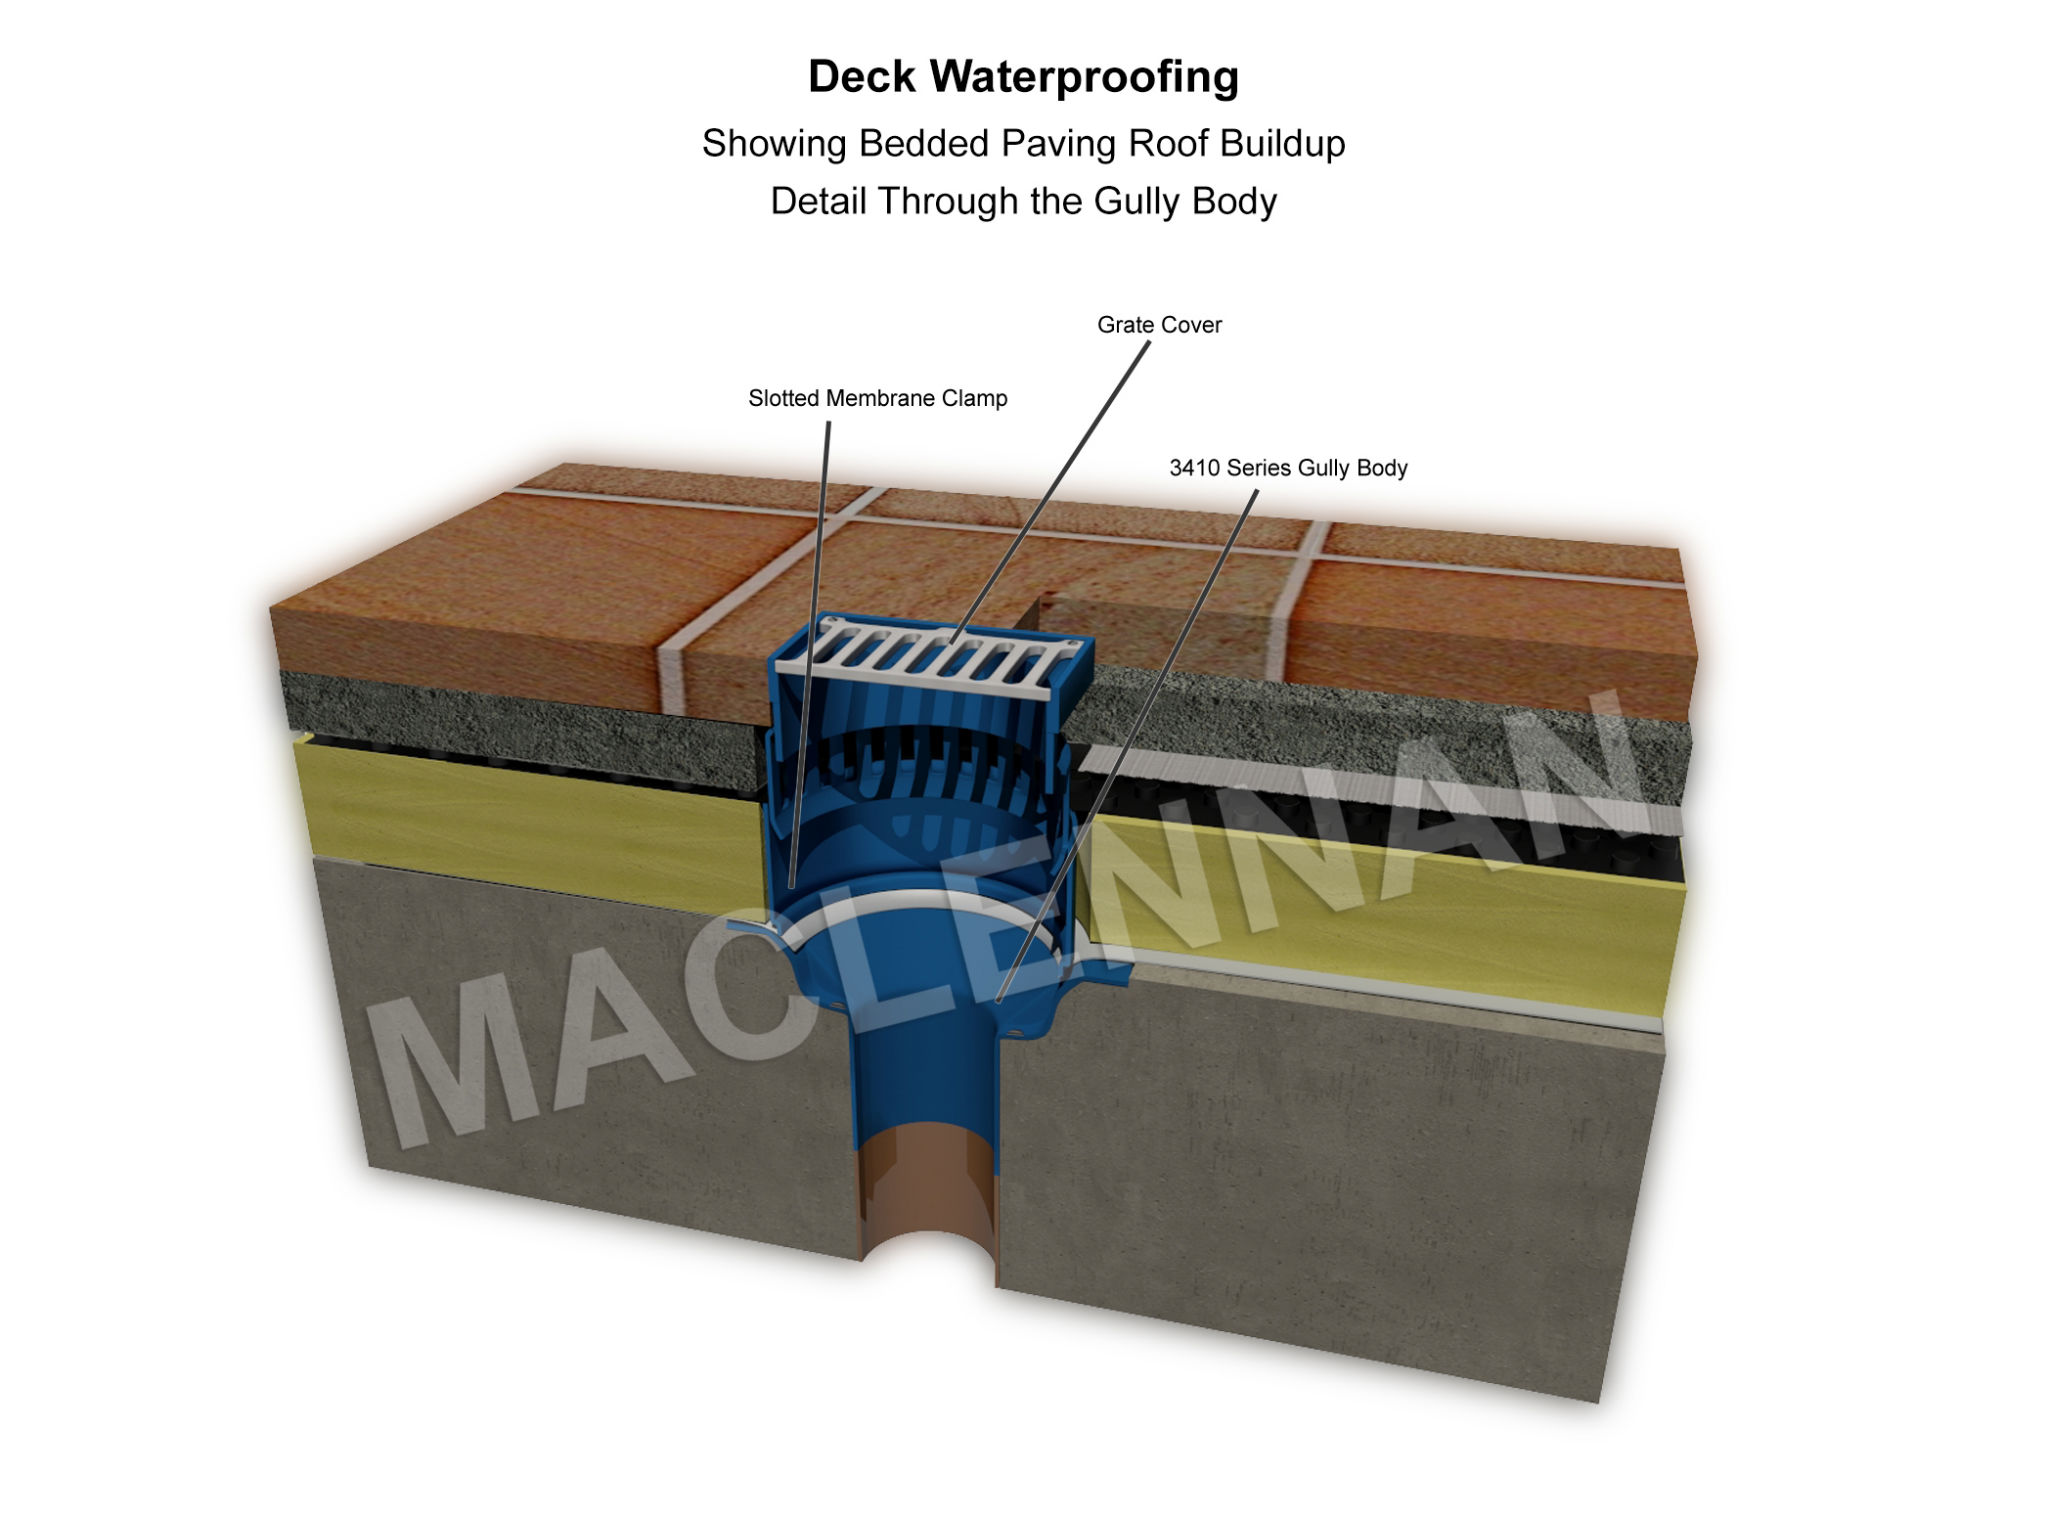 Waterproof membrane detail waterproof membrane system for - The System Has Been Further Developed Over The Last 20 Years For Use In The Waterproofing Industry For Basement Waterproofing Tanking Reservoir Lining